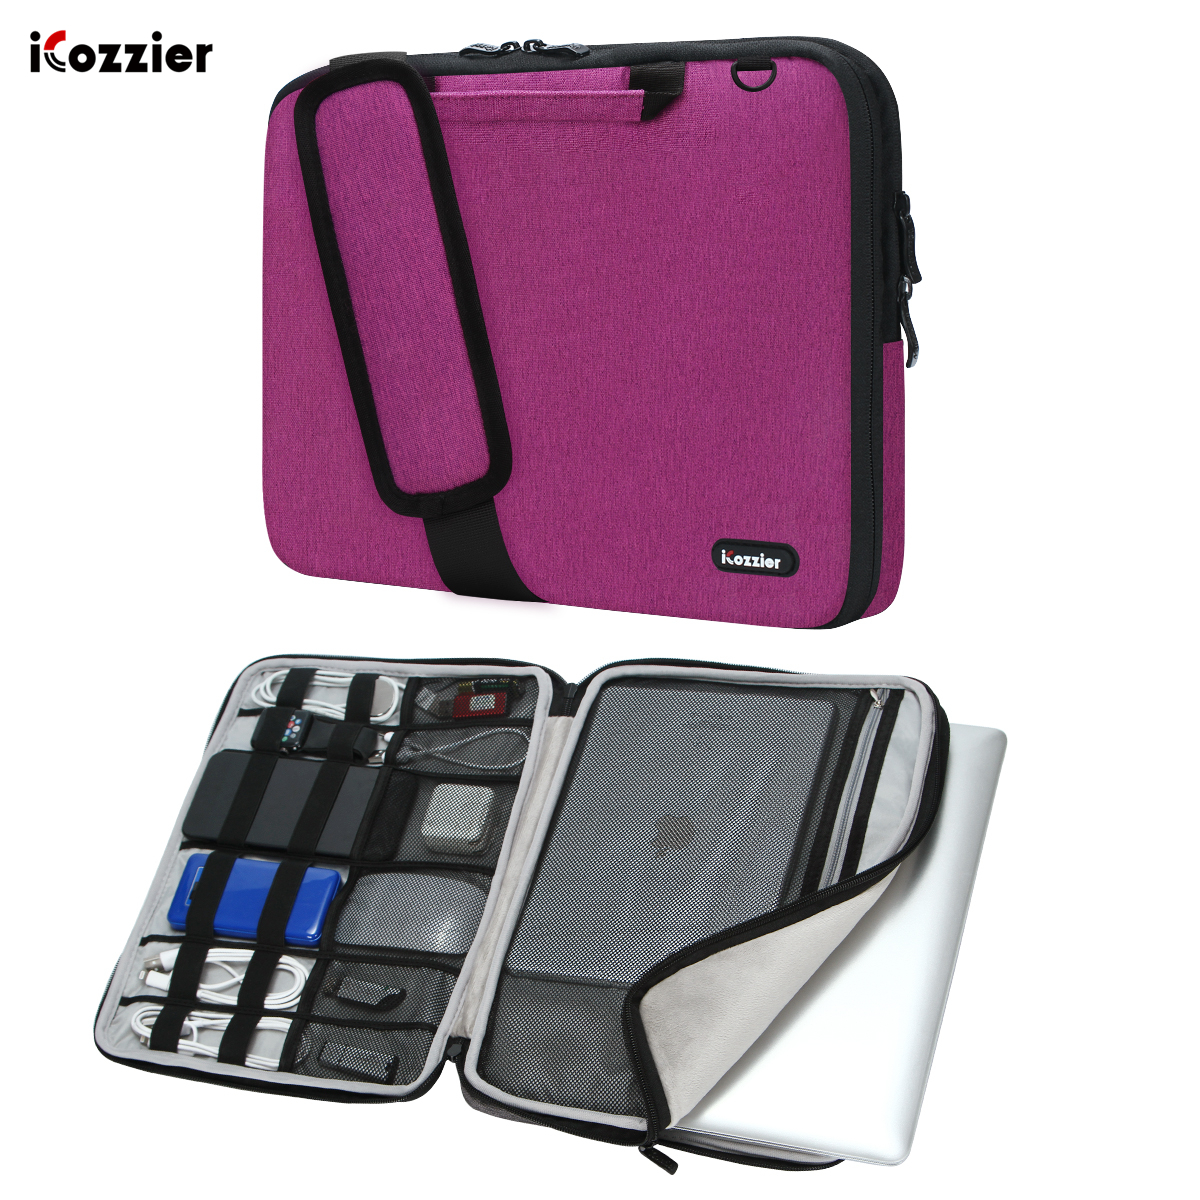 ICozzier 13.3/15.6/17.3 Inch Handle Electronic Accessories Strap Laptop Sleeve Case Bag Protective Bag For 15.6 Notebook